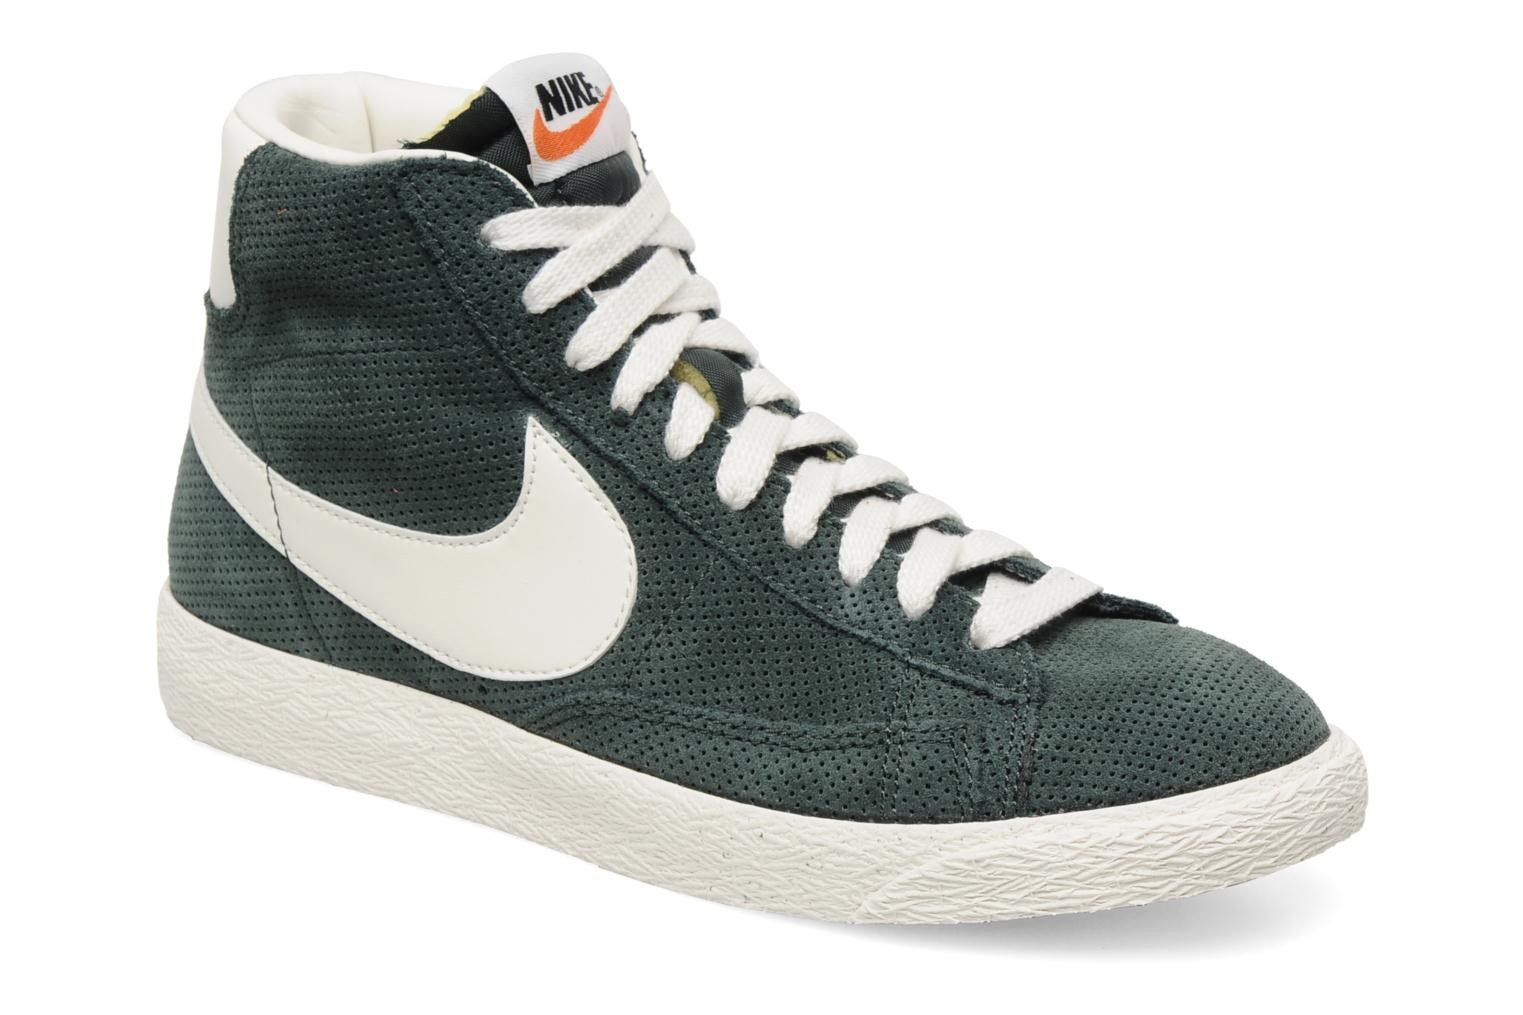 Nike Blazer Mid Prm Vintage Suede Black Spruce Sail Mens High Top Sneakers